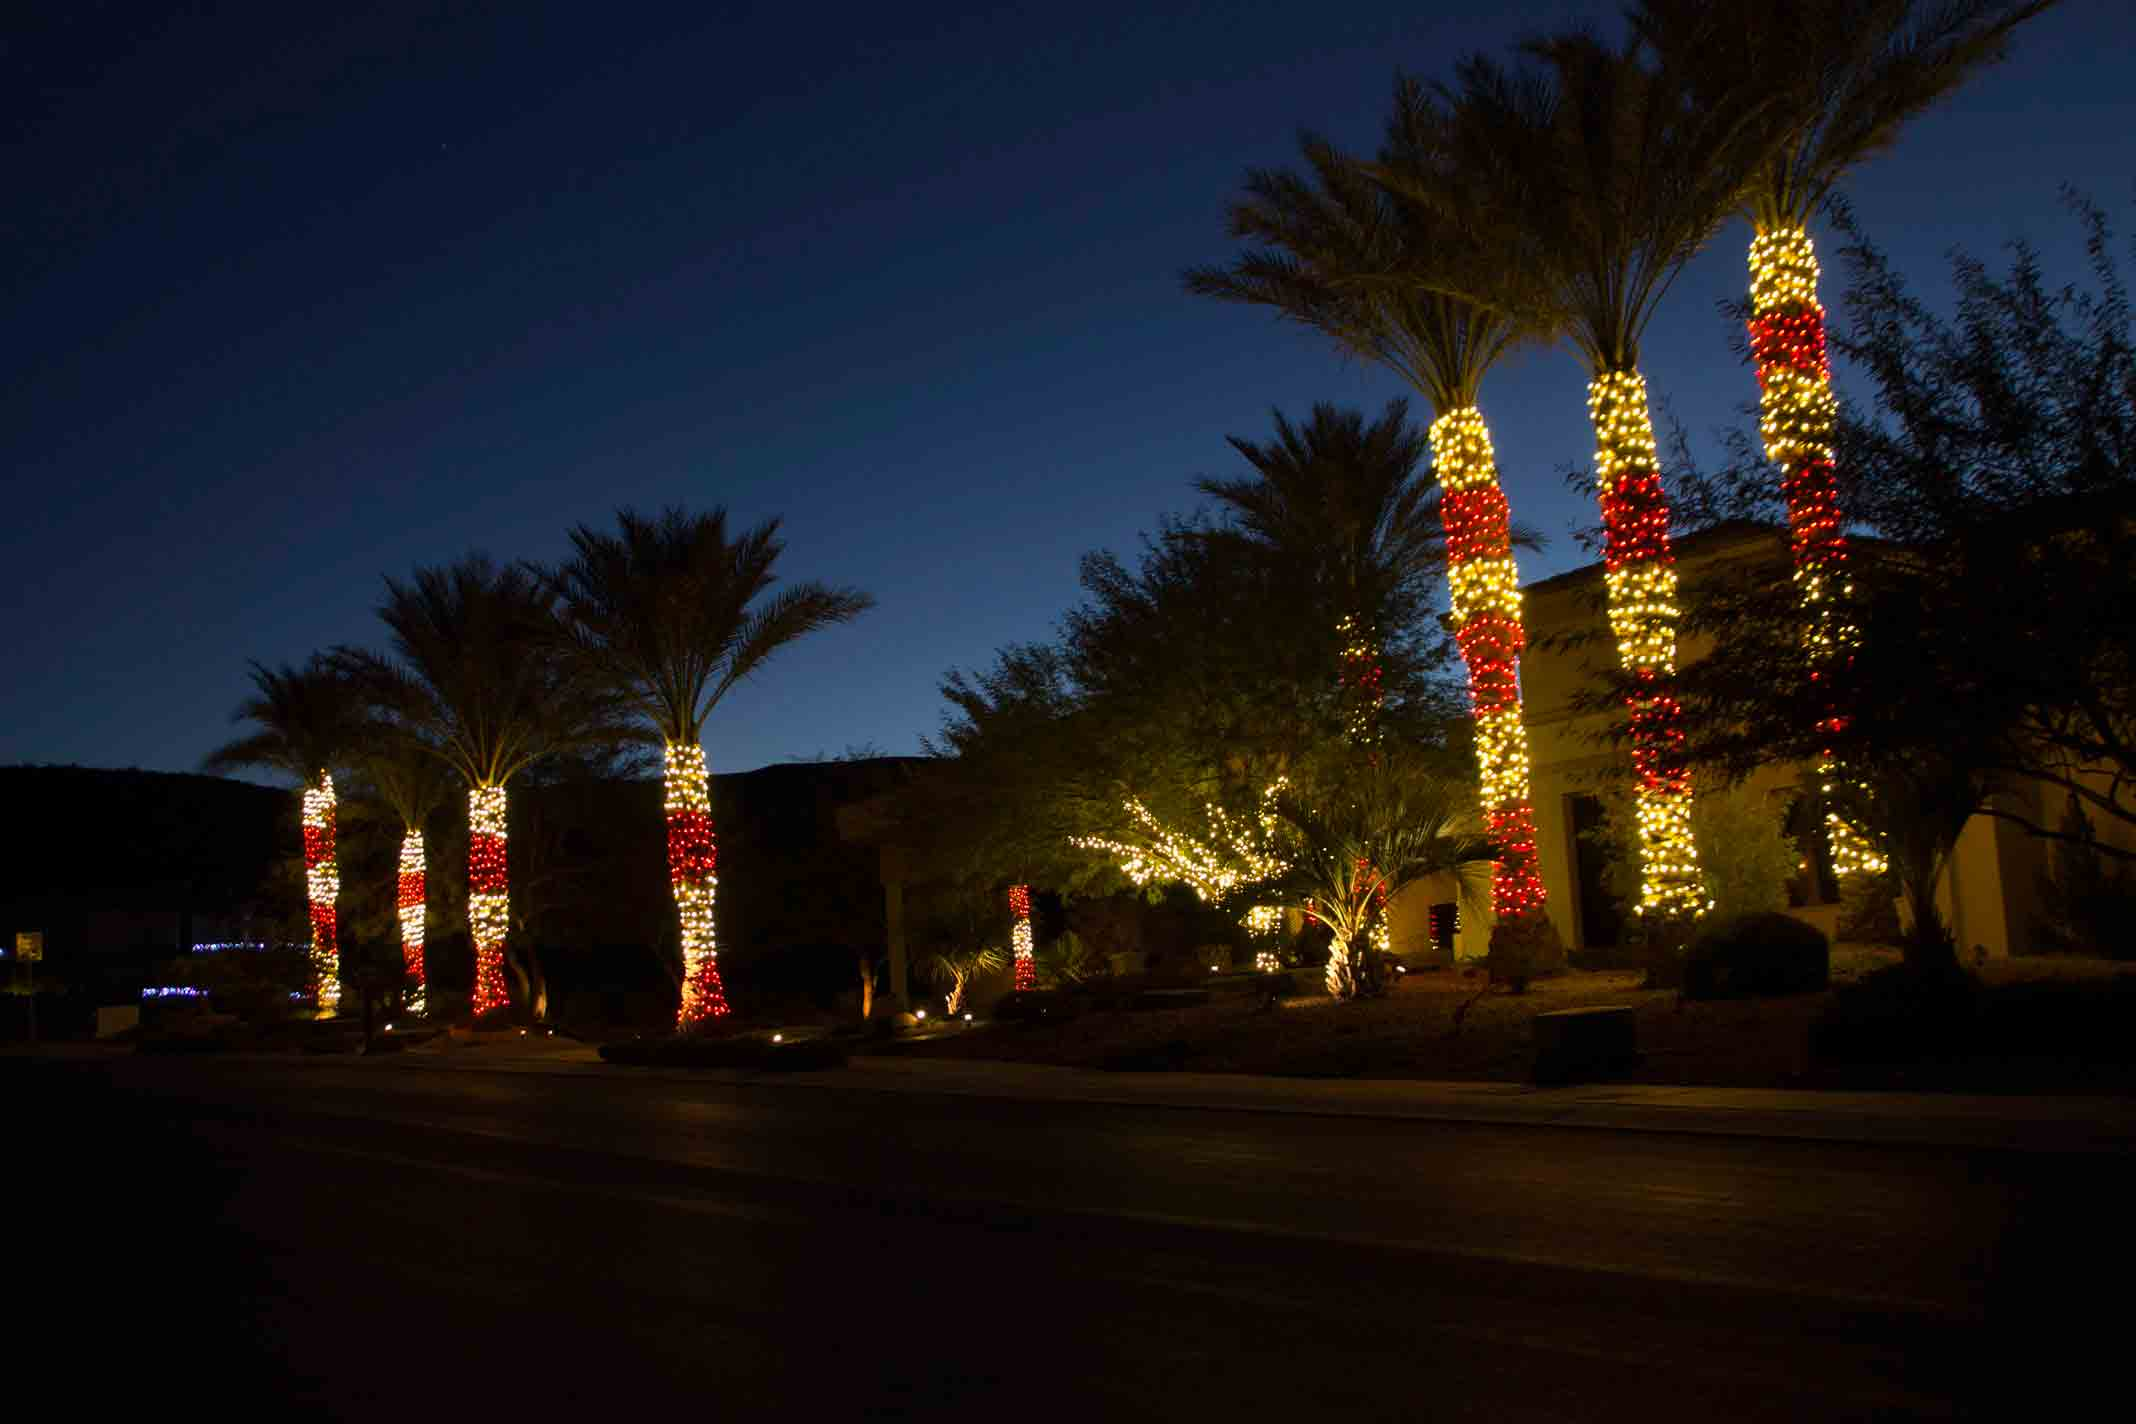 Candy cane palm tree lights by Holiday Decorations in Las Vegas